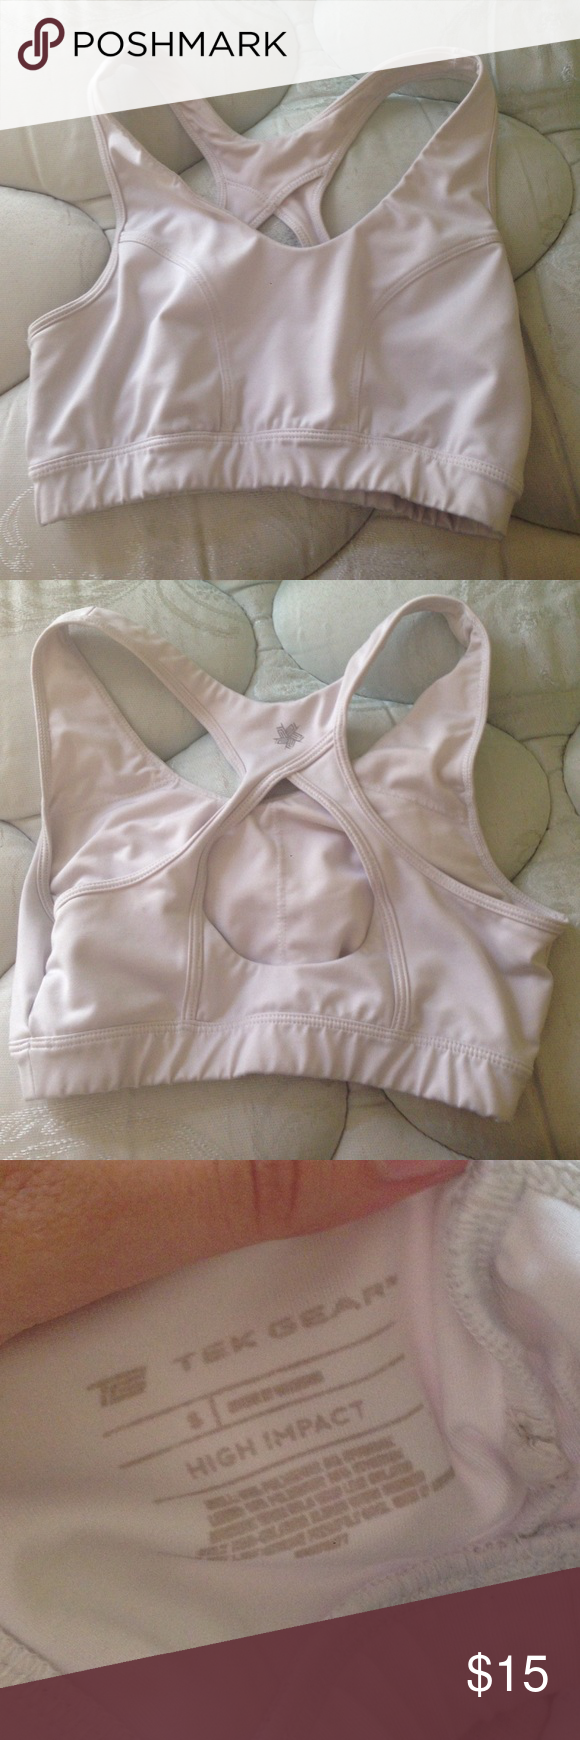 White sports bra White sports bra by Tek Gear. Bought at Kohl's. Like new! Feel free to ask questions and make offers. I also bundle! Tek gear  Intimates & Sleepwear Bras